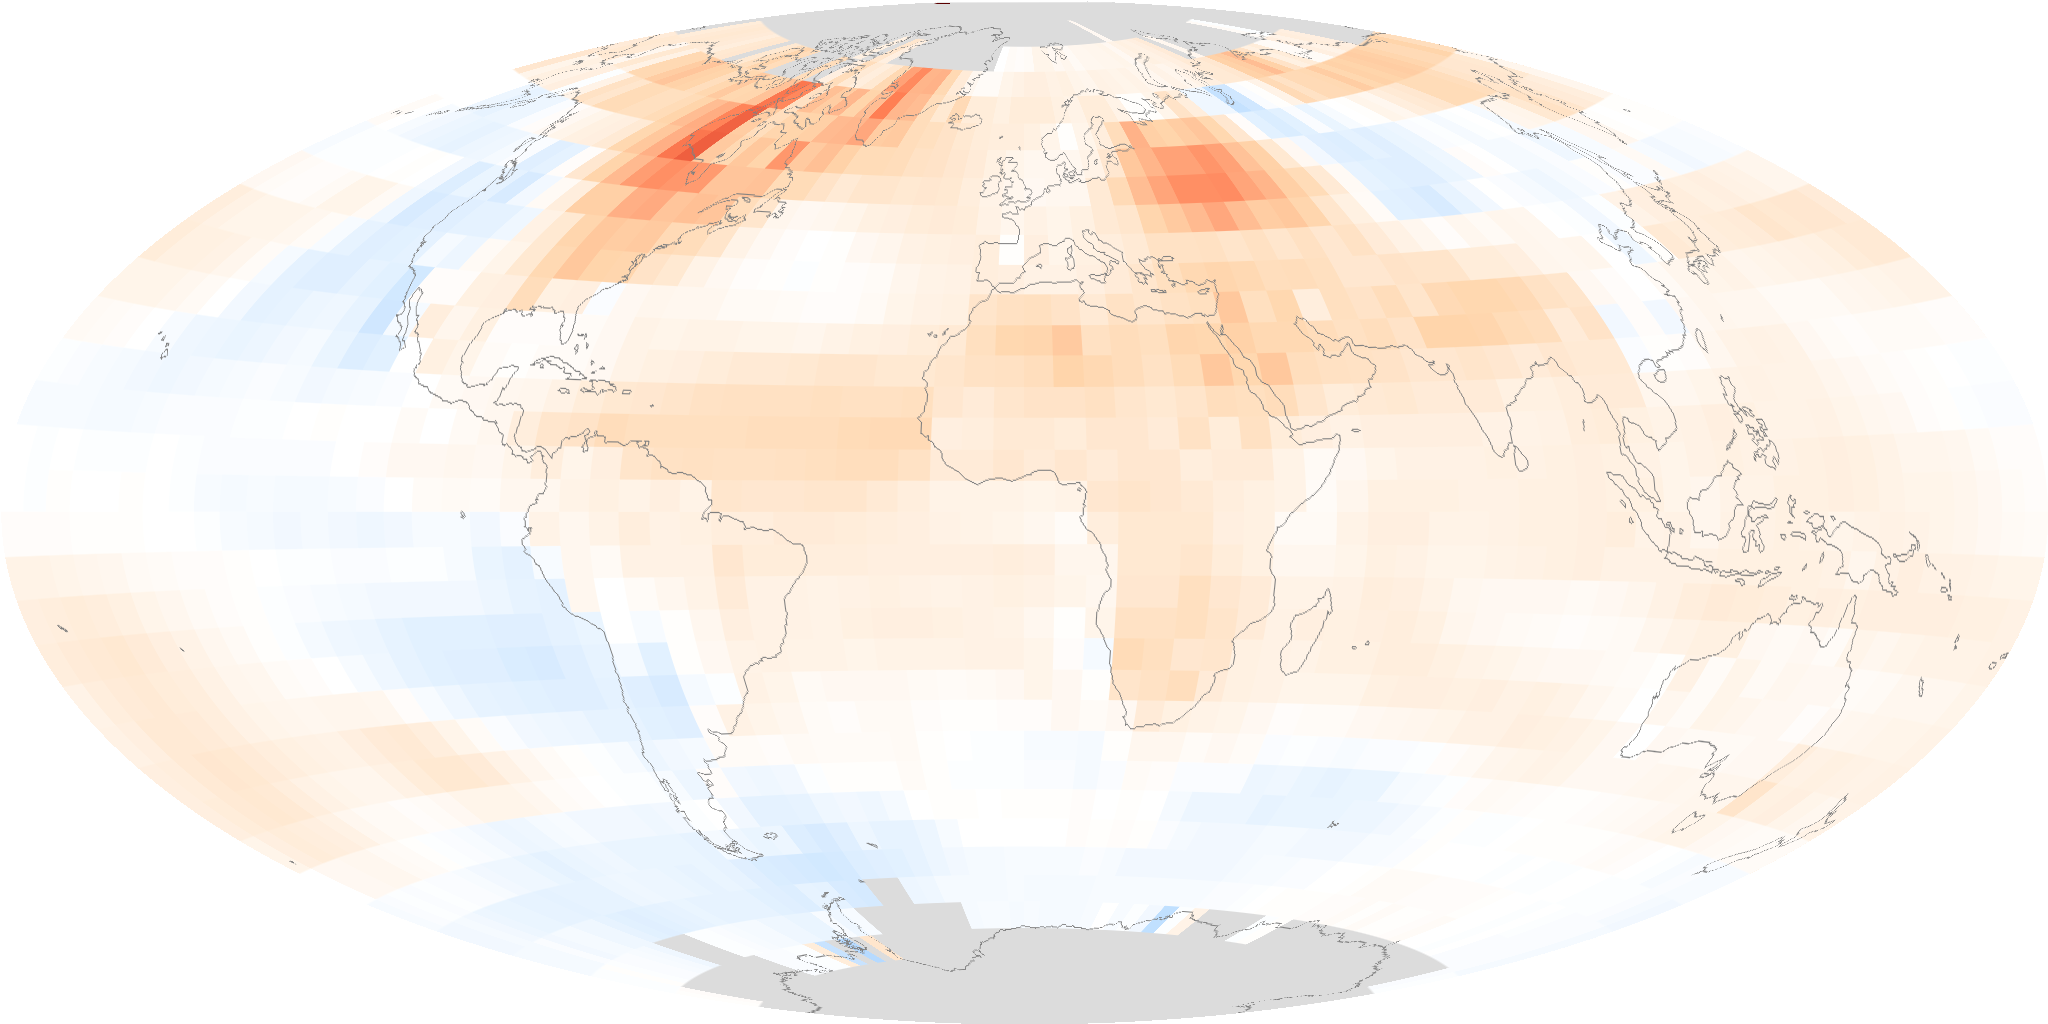 July-December 2010 Temperatures